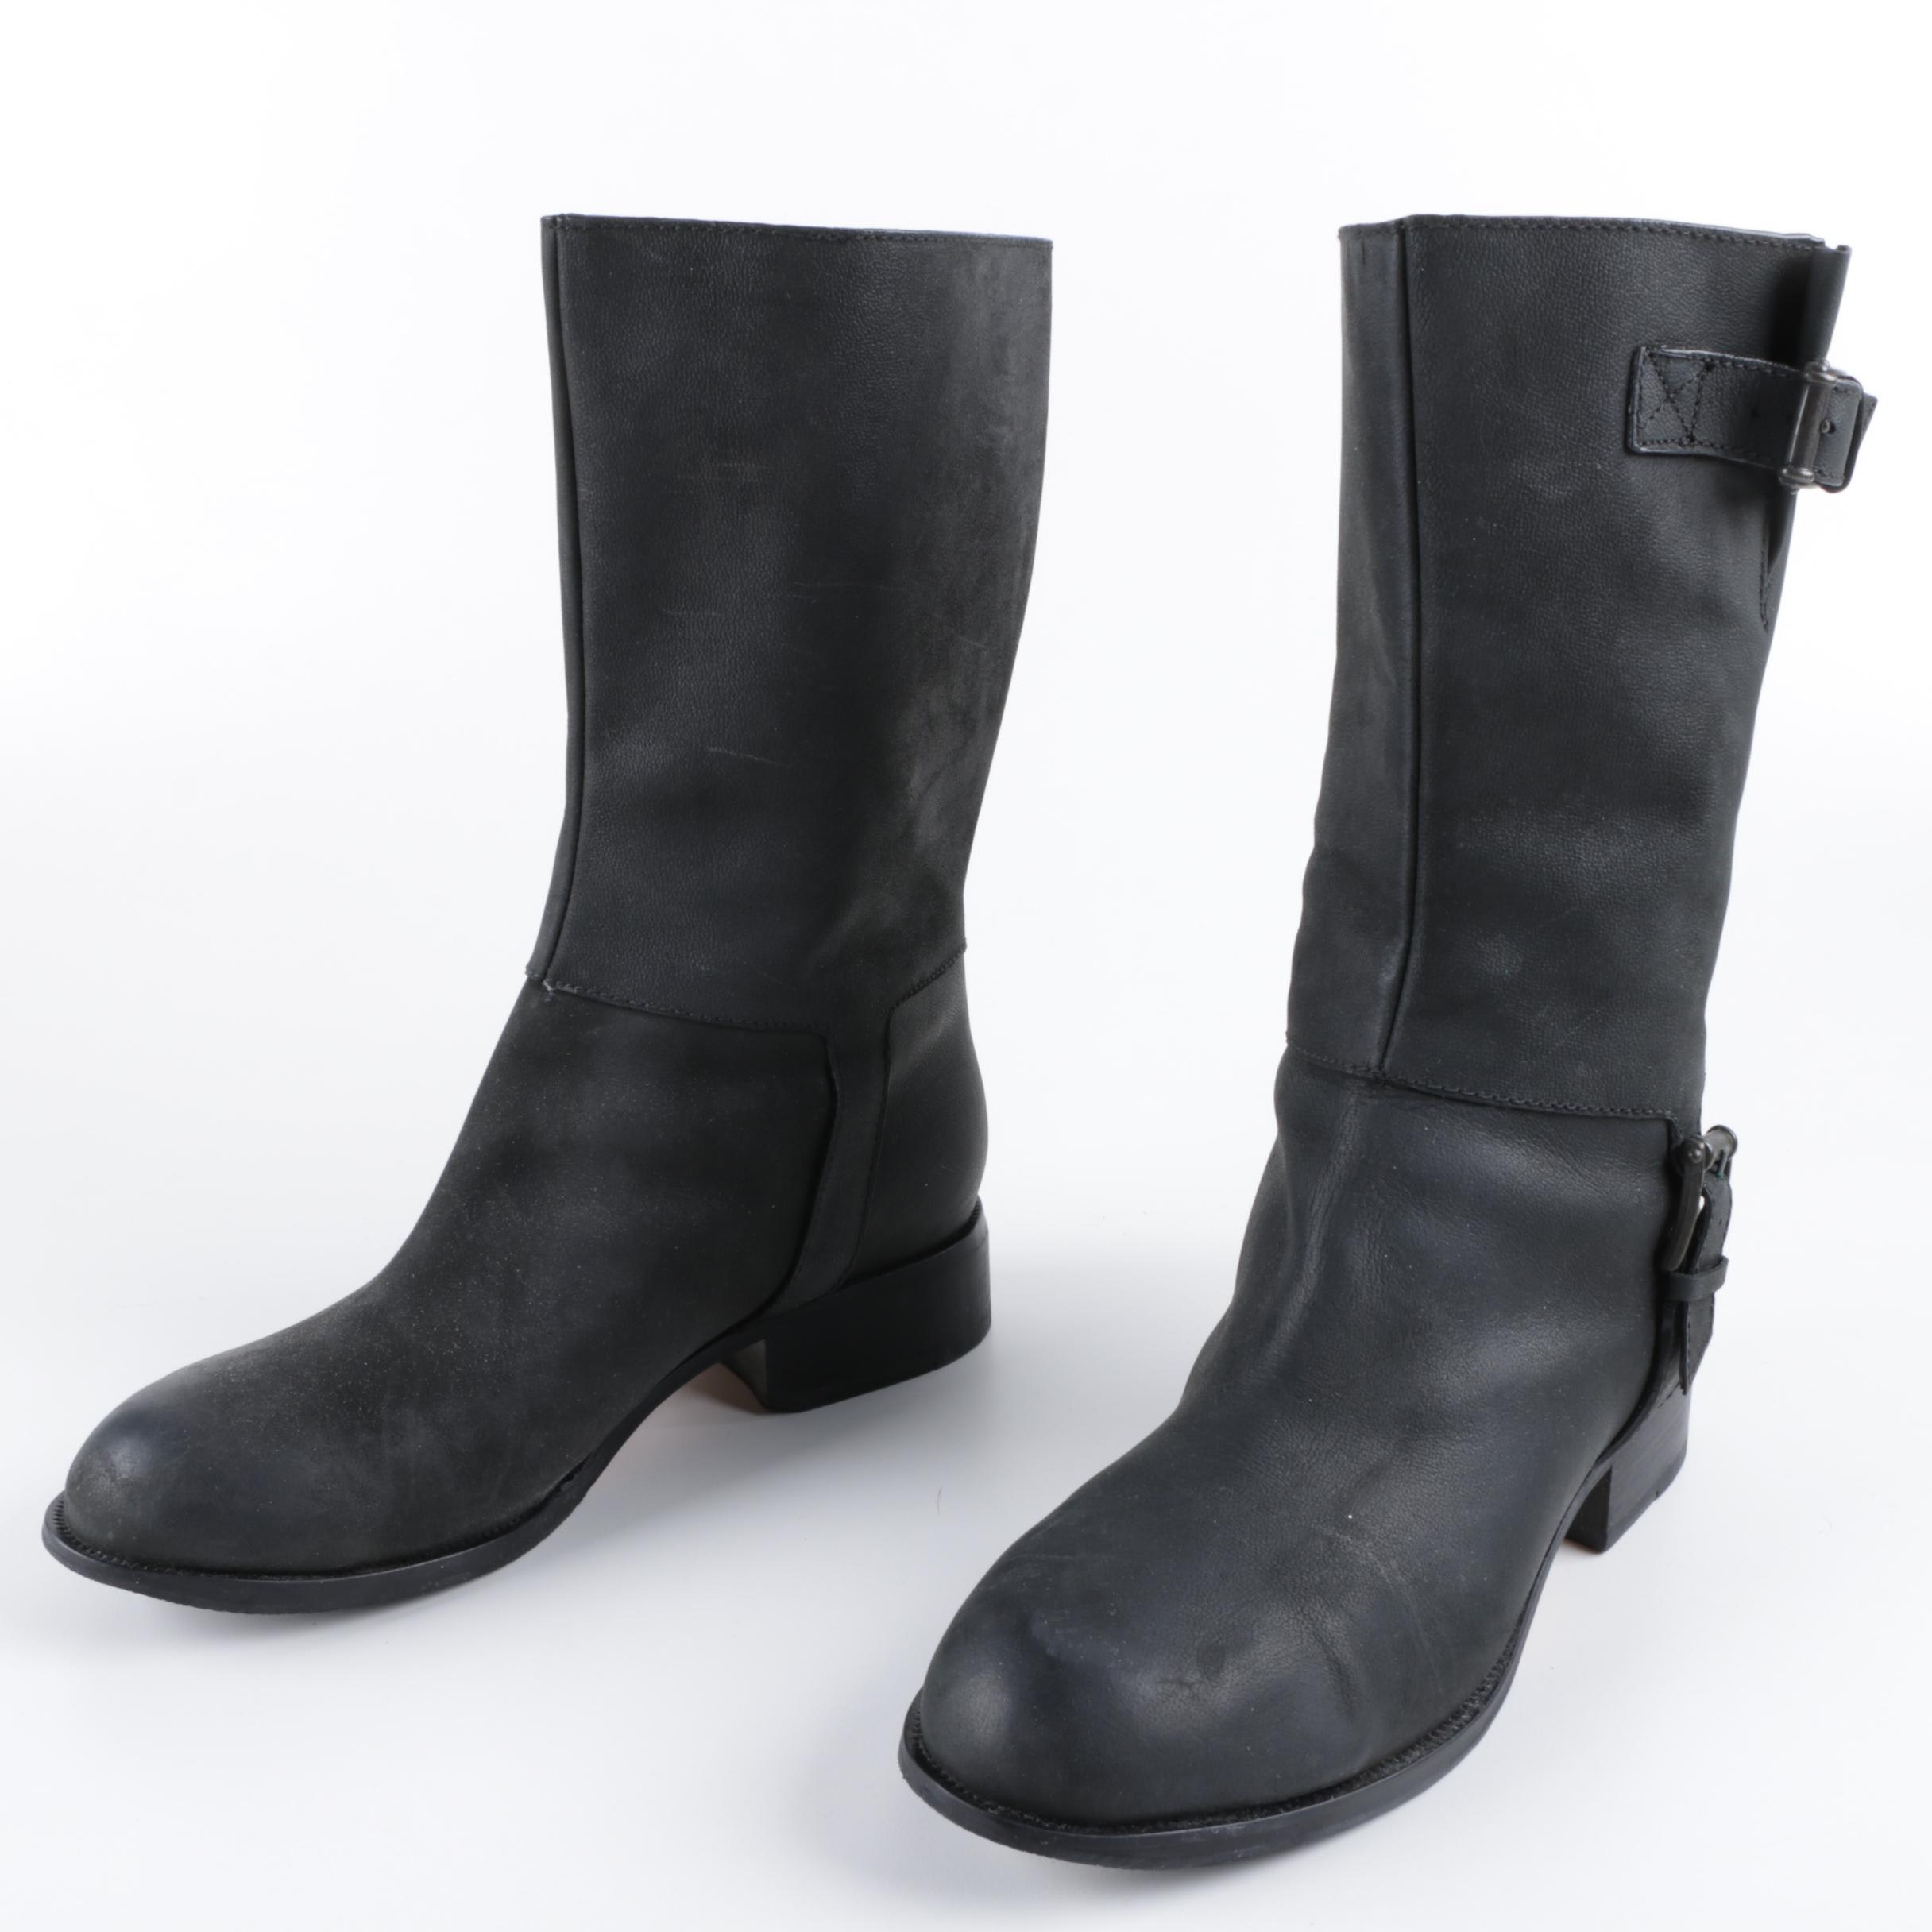 Cole Haan Leora Black Leather Boots with Buckle Straps